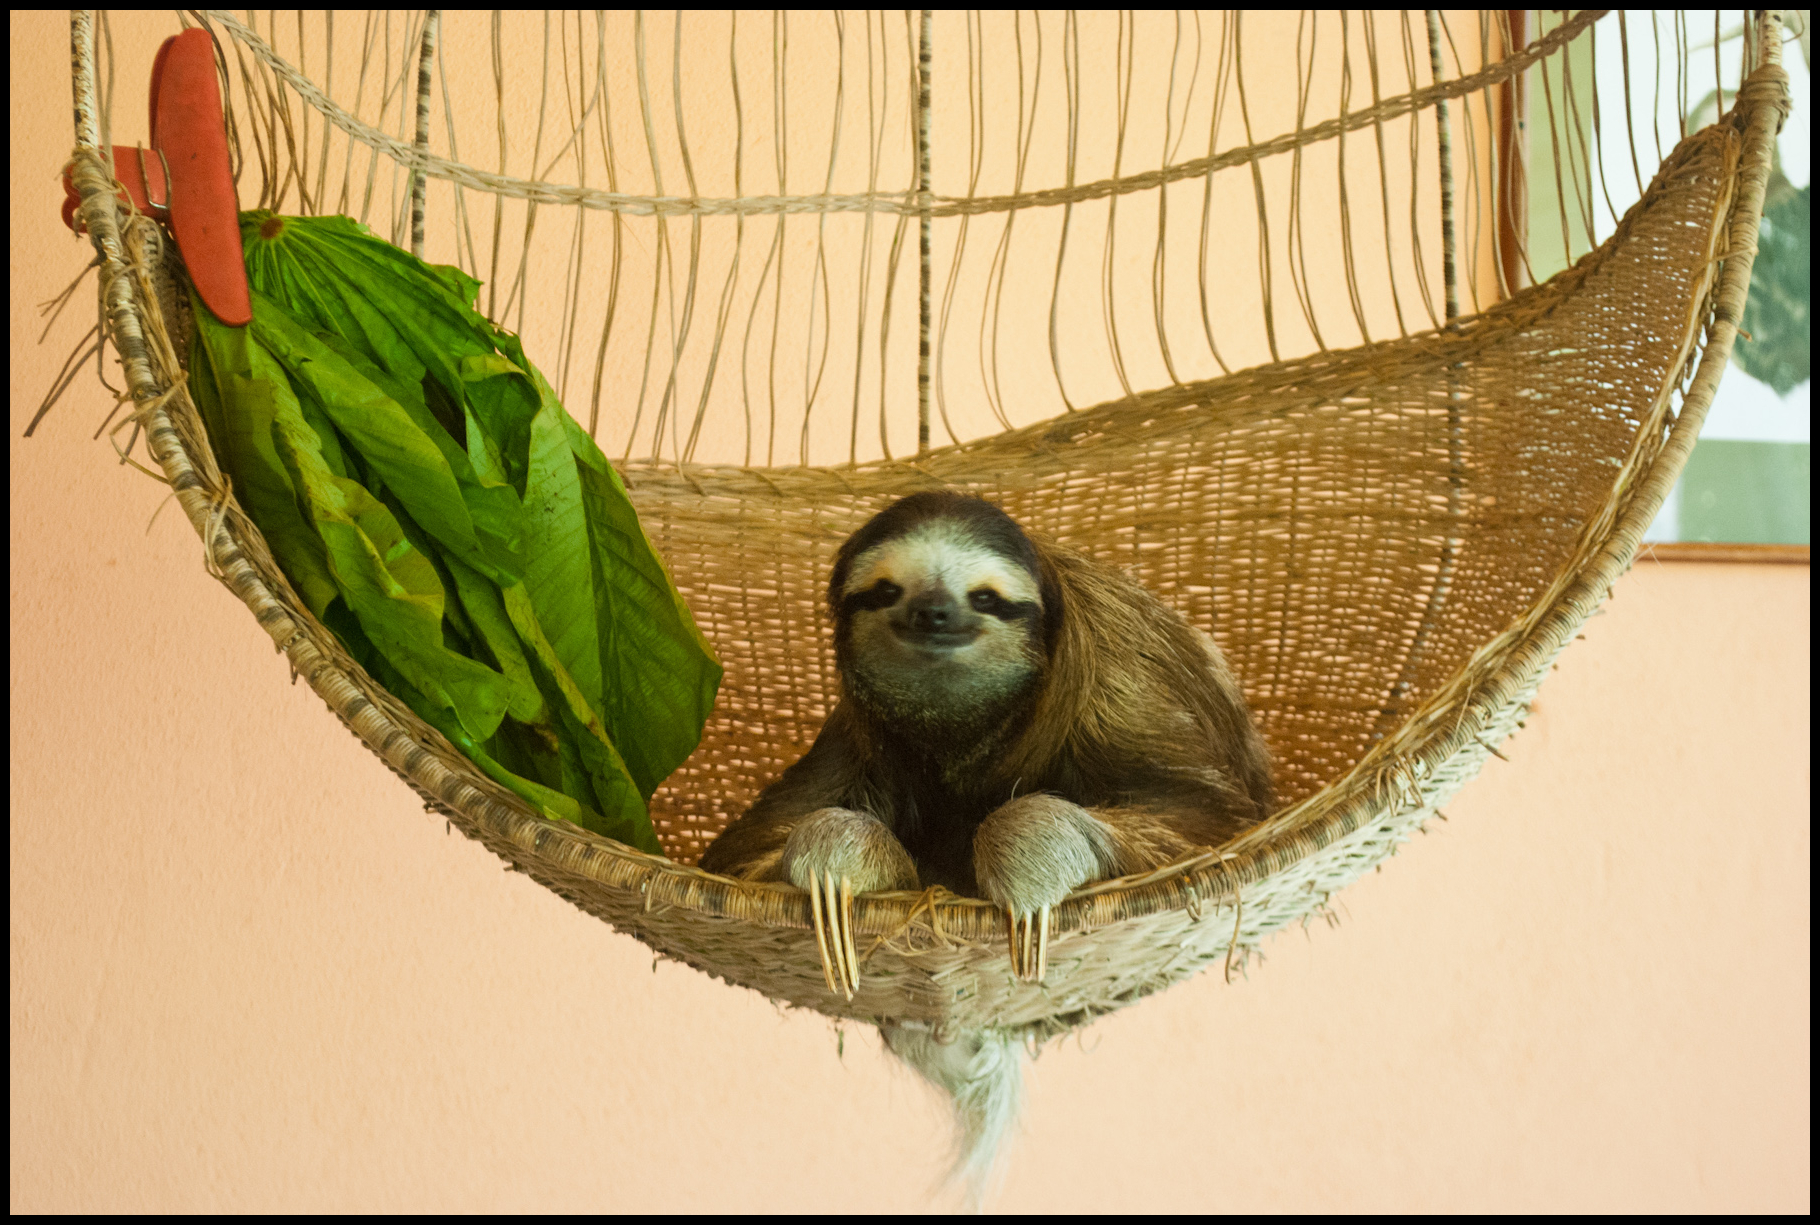 Sloth Sanctuary Never Done That